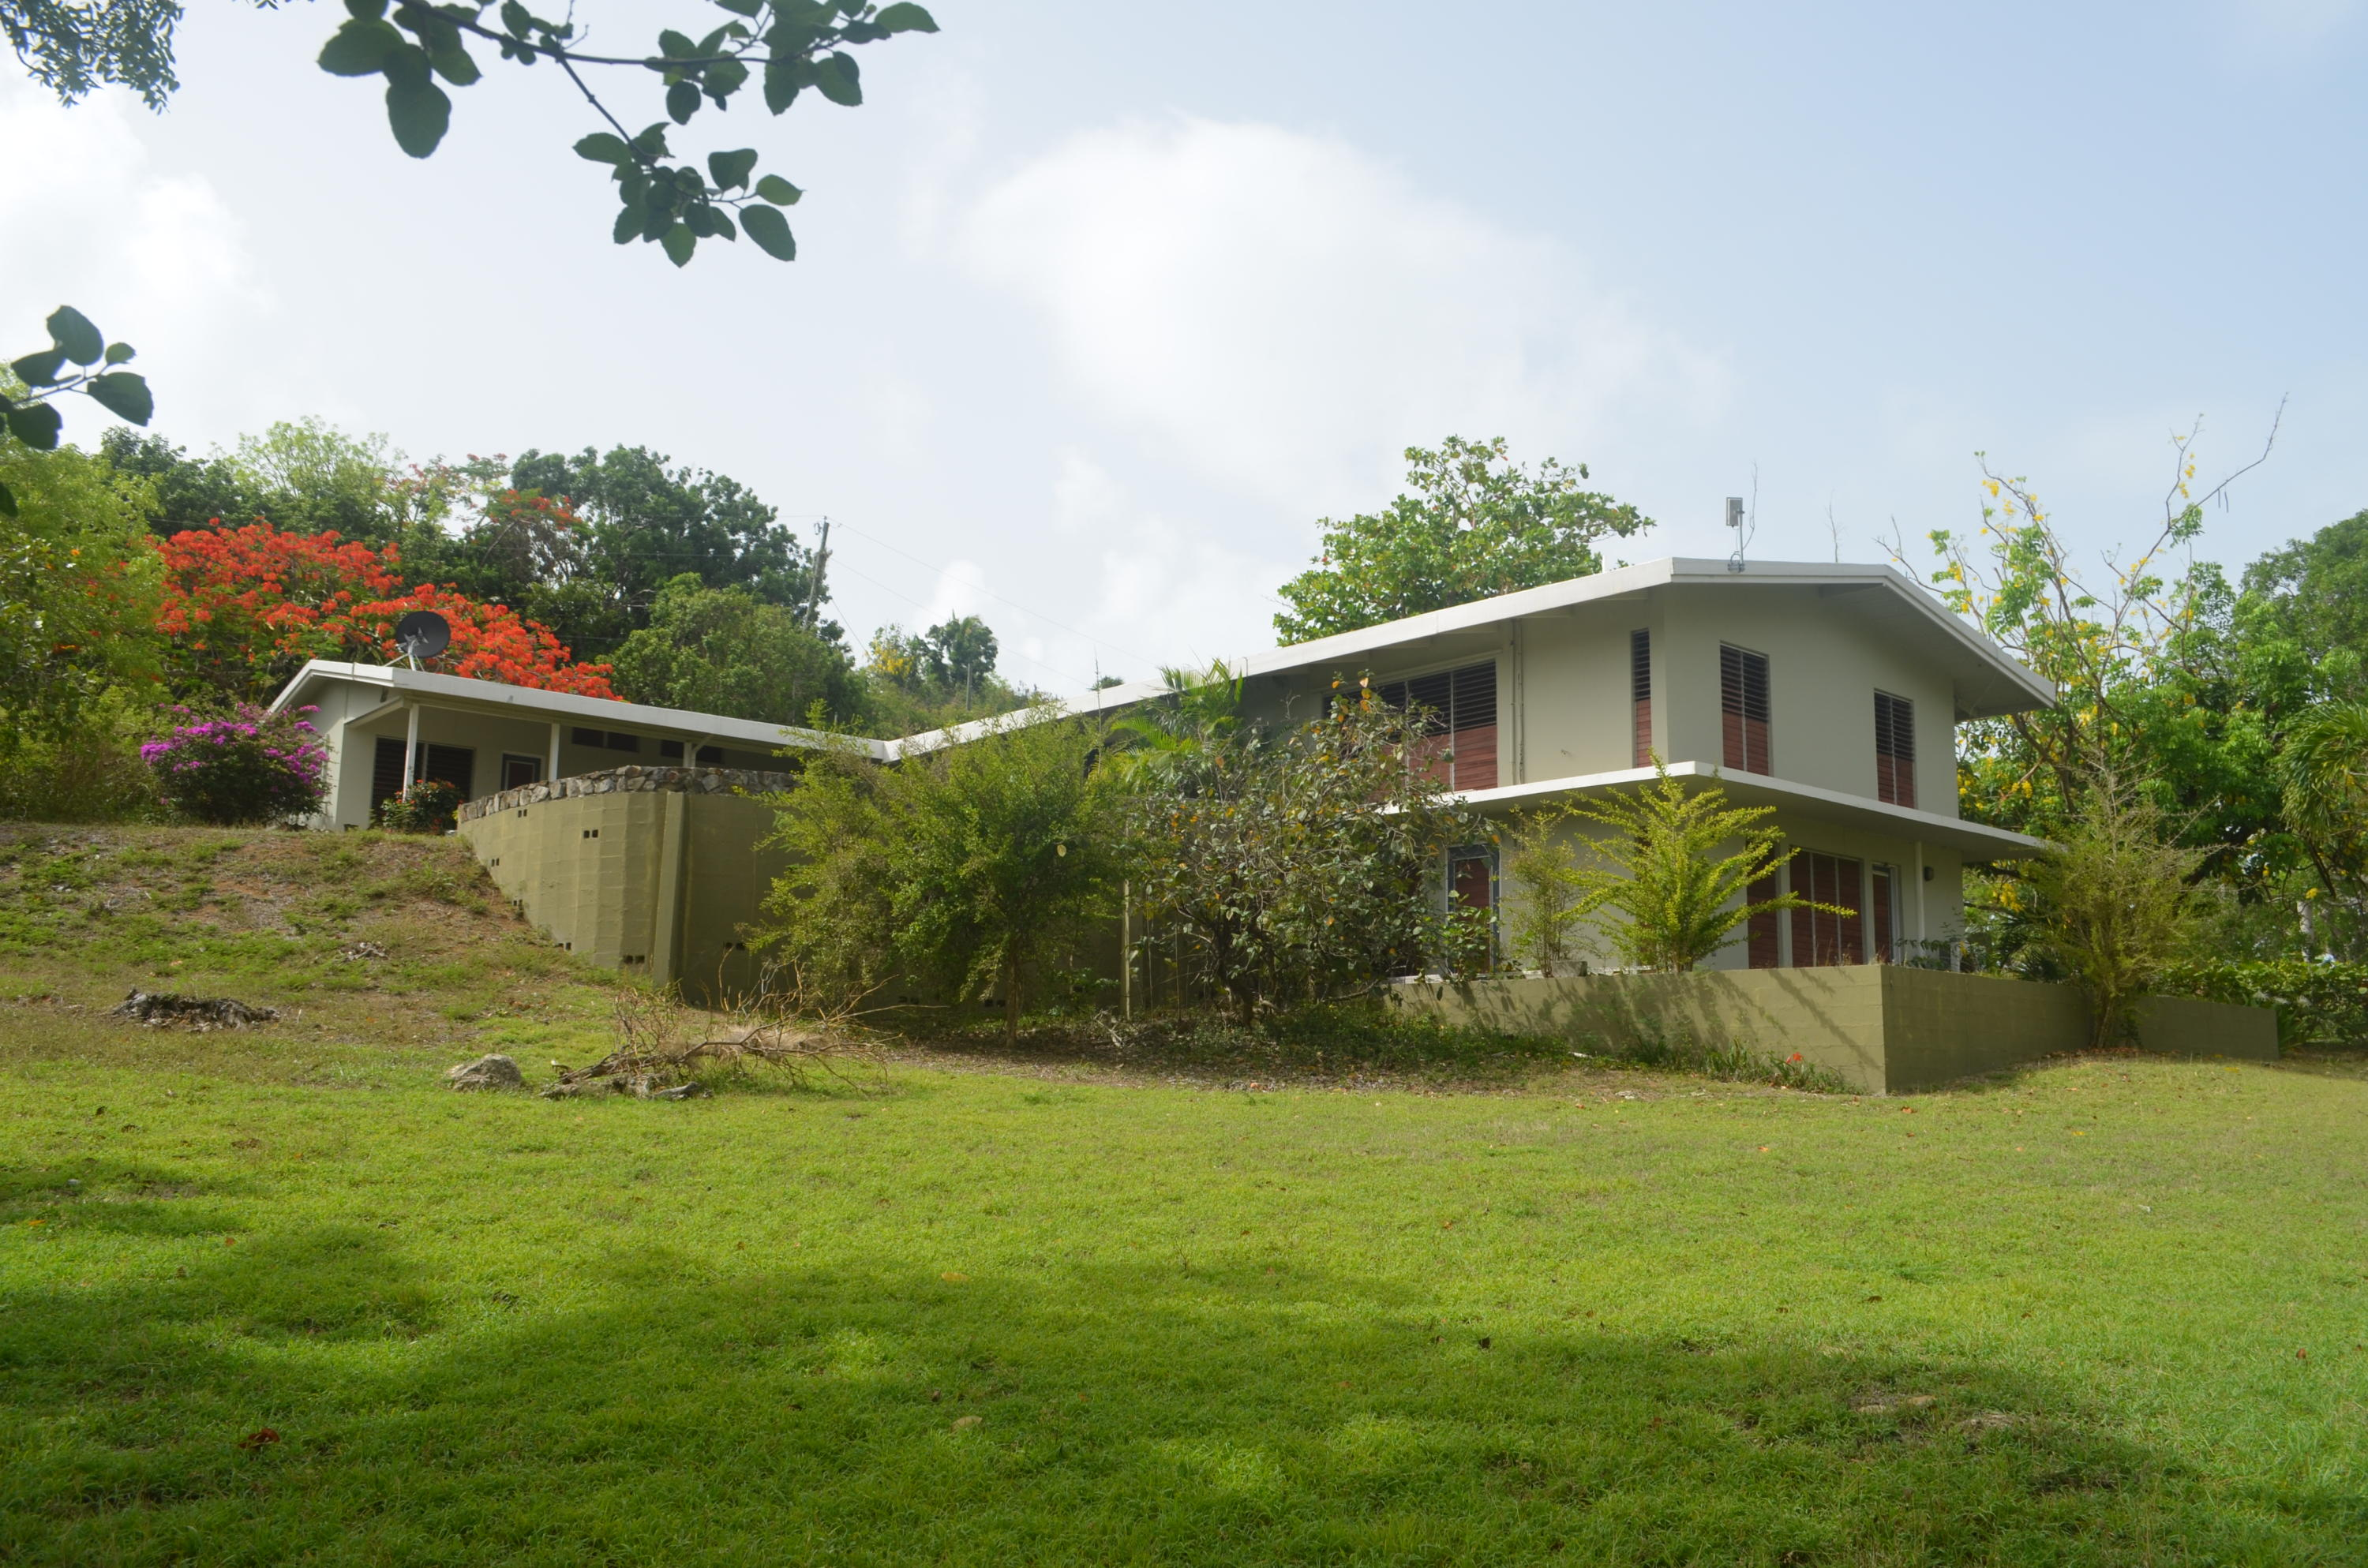 Single Family Home for Sale at 2A Sight (The) EA 2A Sight (The) EA St Croix, Virgin Islands 00820 United States Virgin Islands